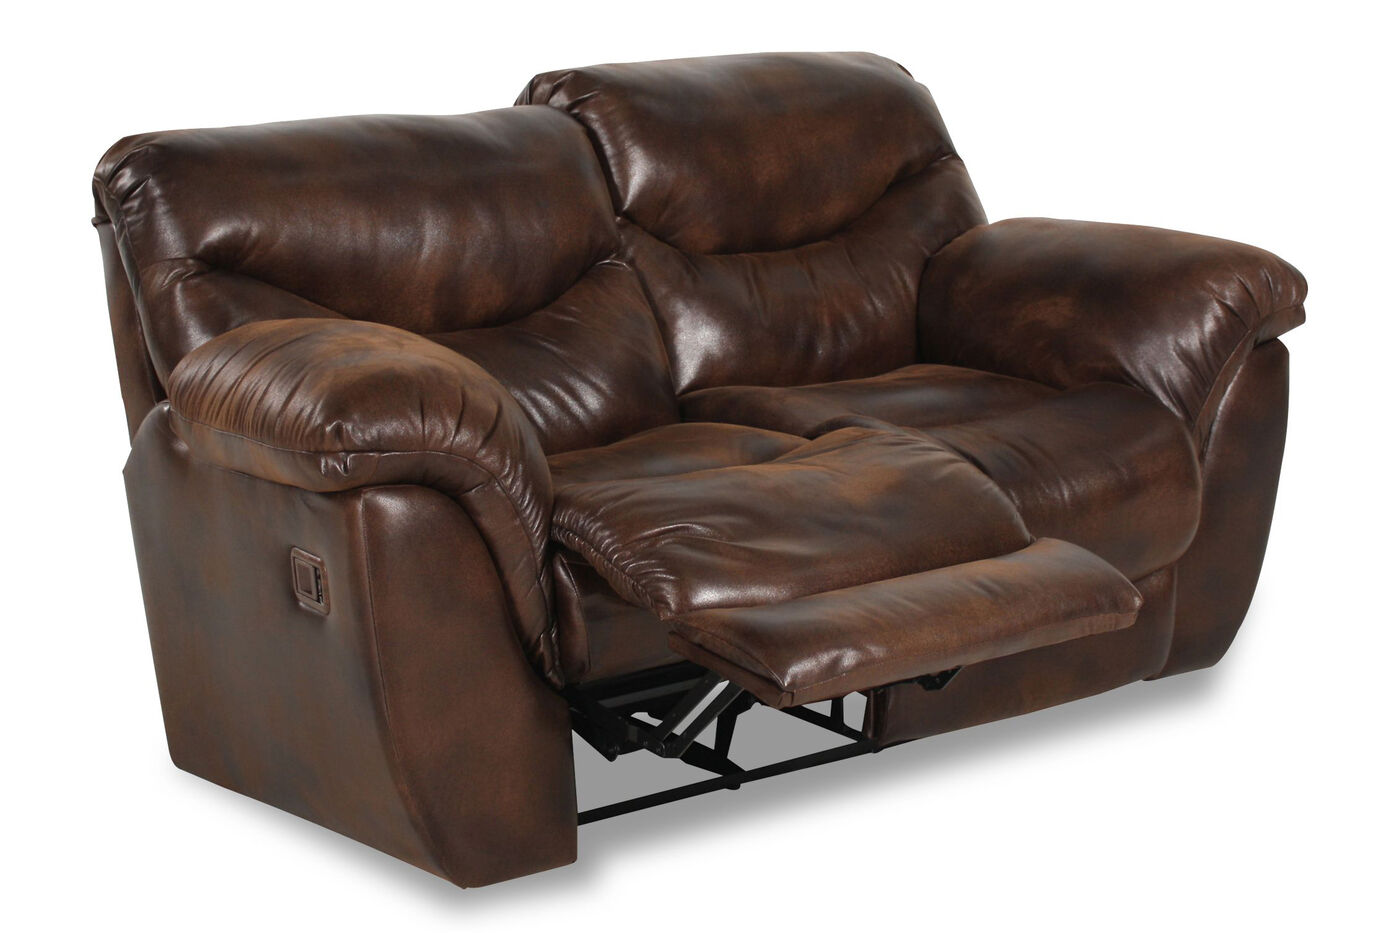 Lane Dreamer Espresso Reclining Loveseat Mathis Brothers Furniture